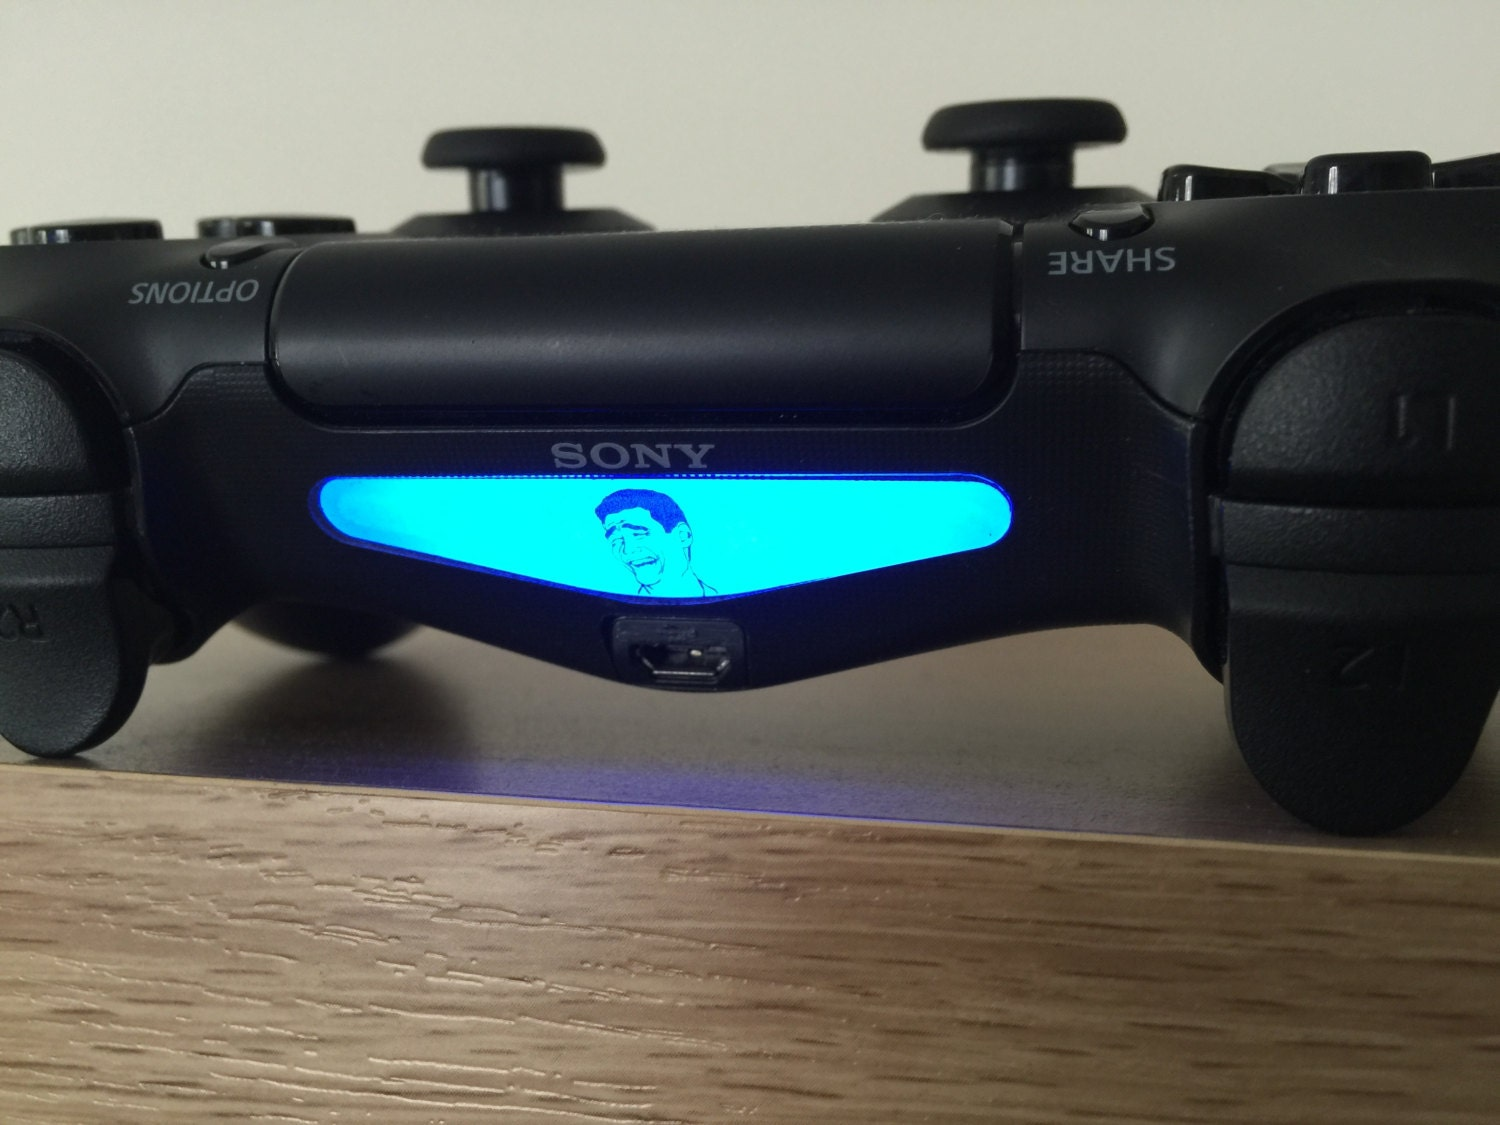 Epic Troll Face Meme Playstation 4 PS4 Dual Shock Controller